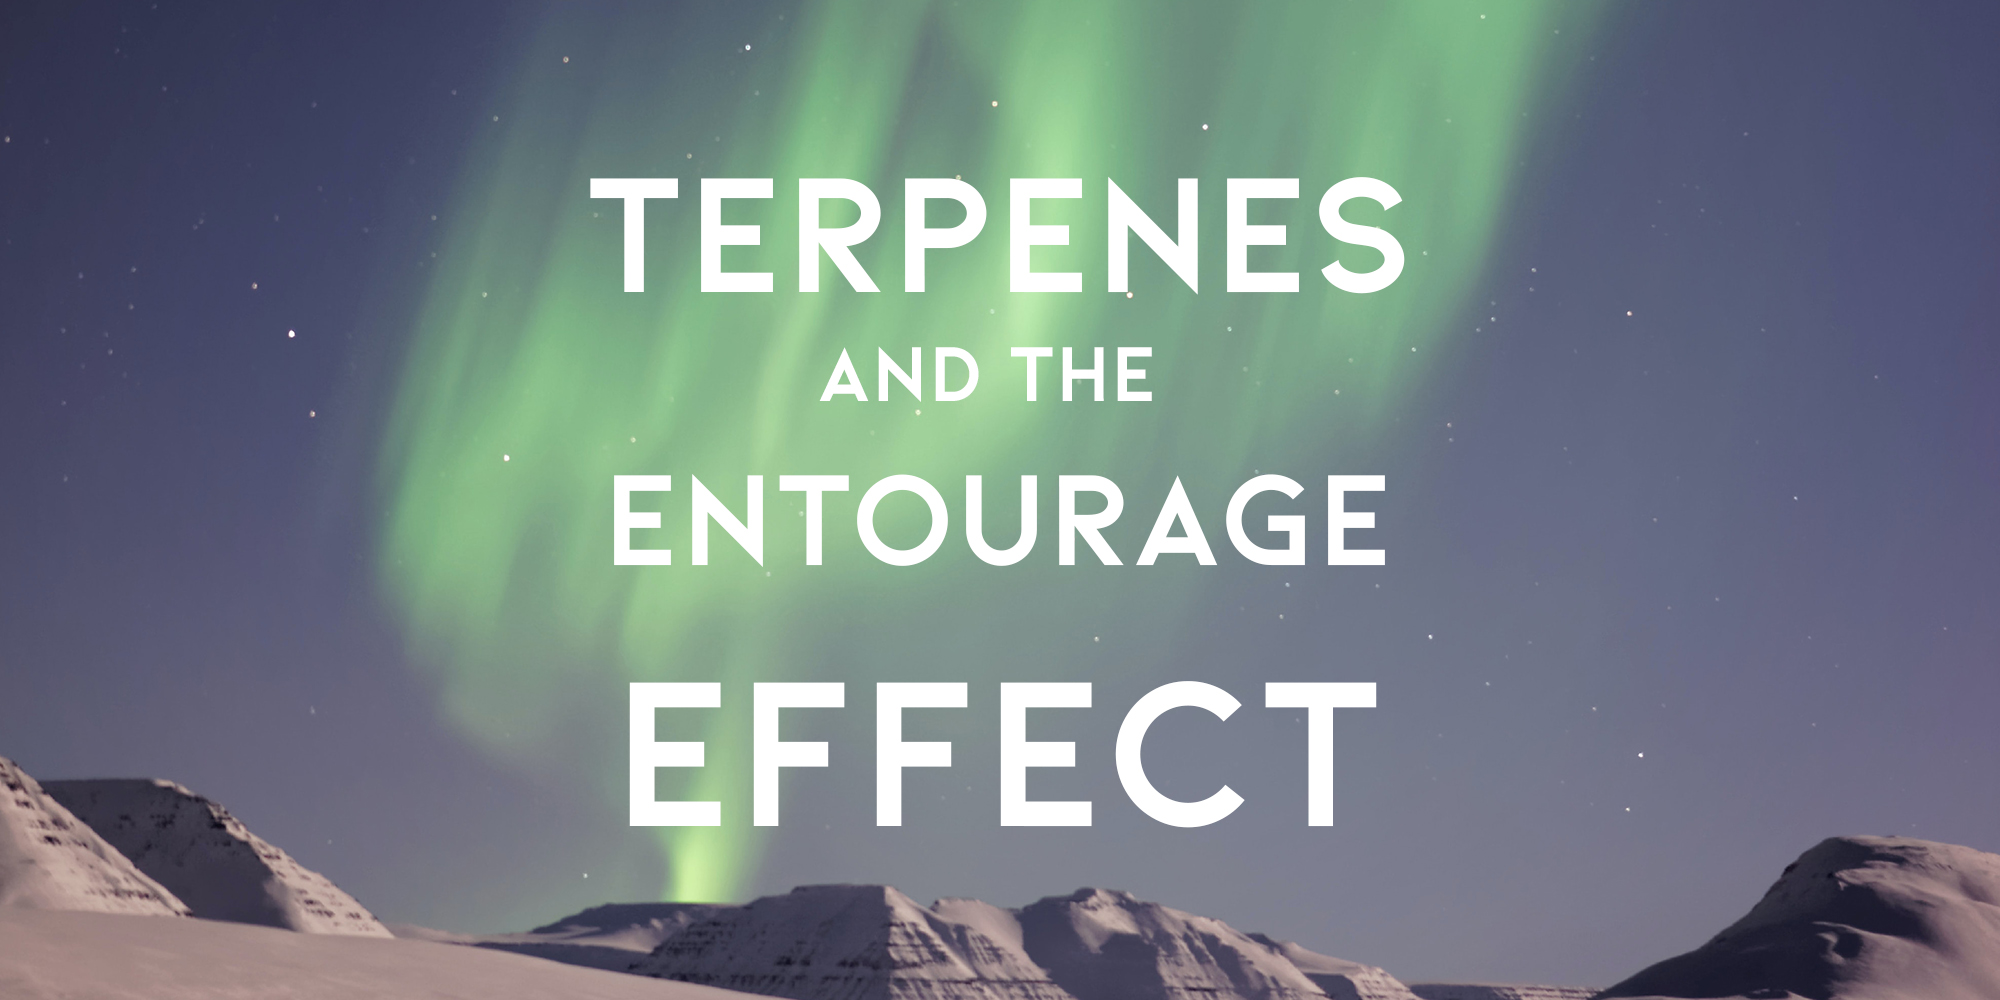 How Terpenes Boost Your High - Experience The Entourage Effect With Live Resin